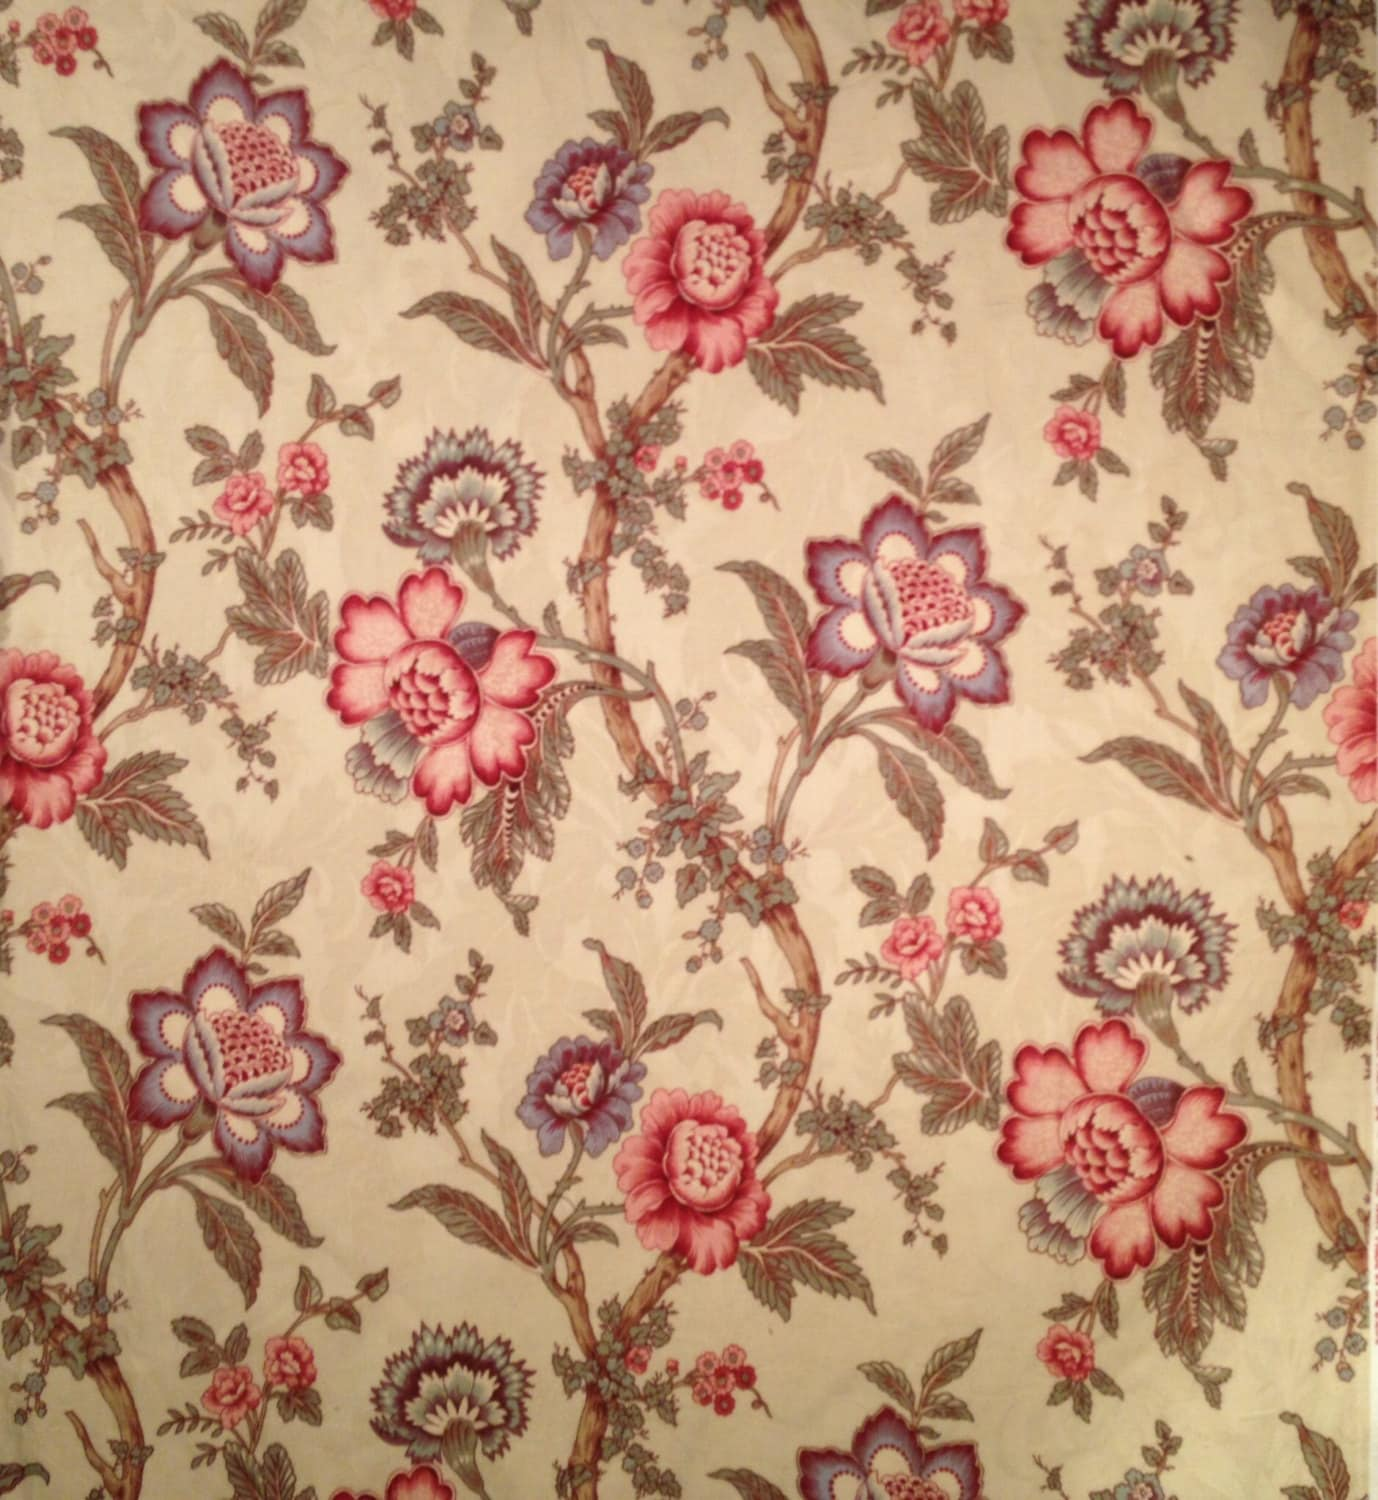 Waverly Home Decor: Classic Waverly Home Decor Floral On Cream Fabric-By-The-Yard